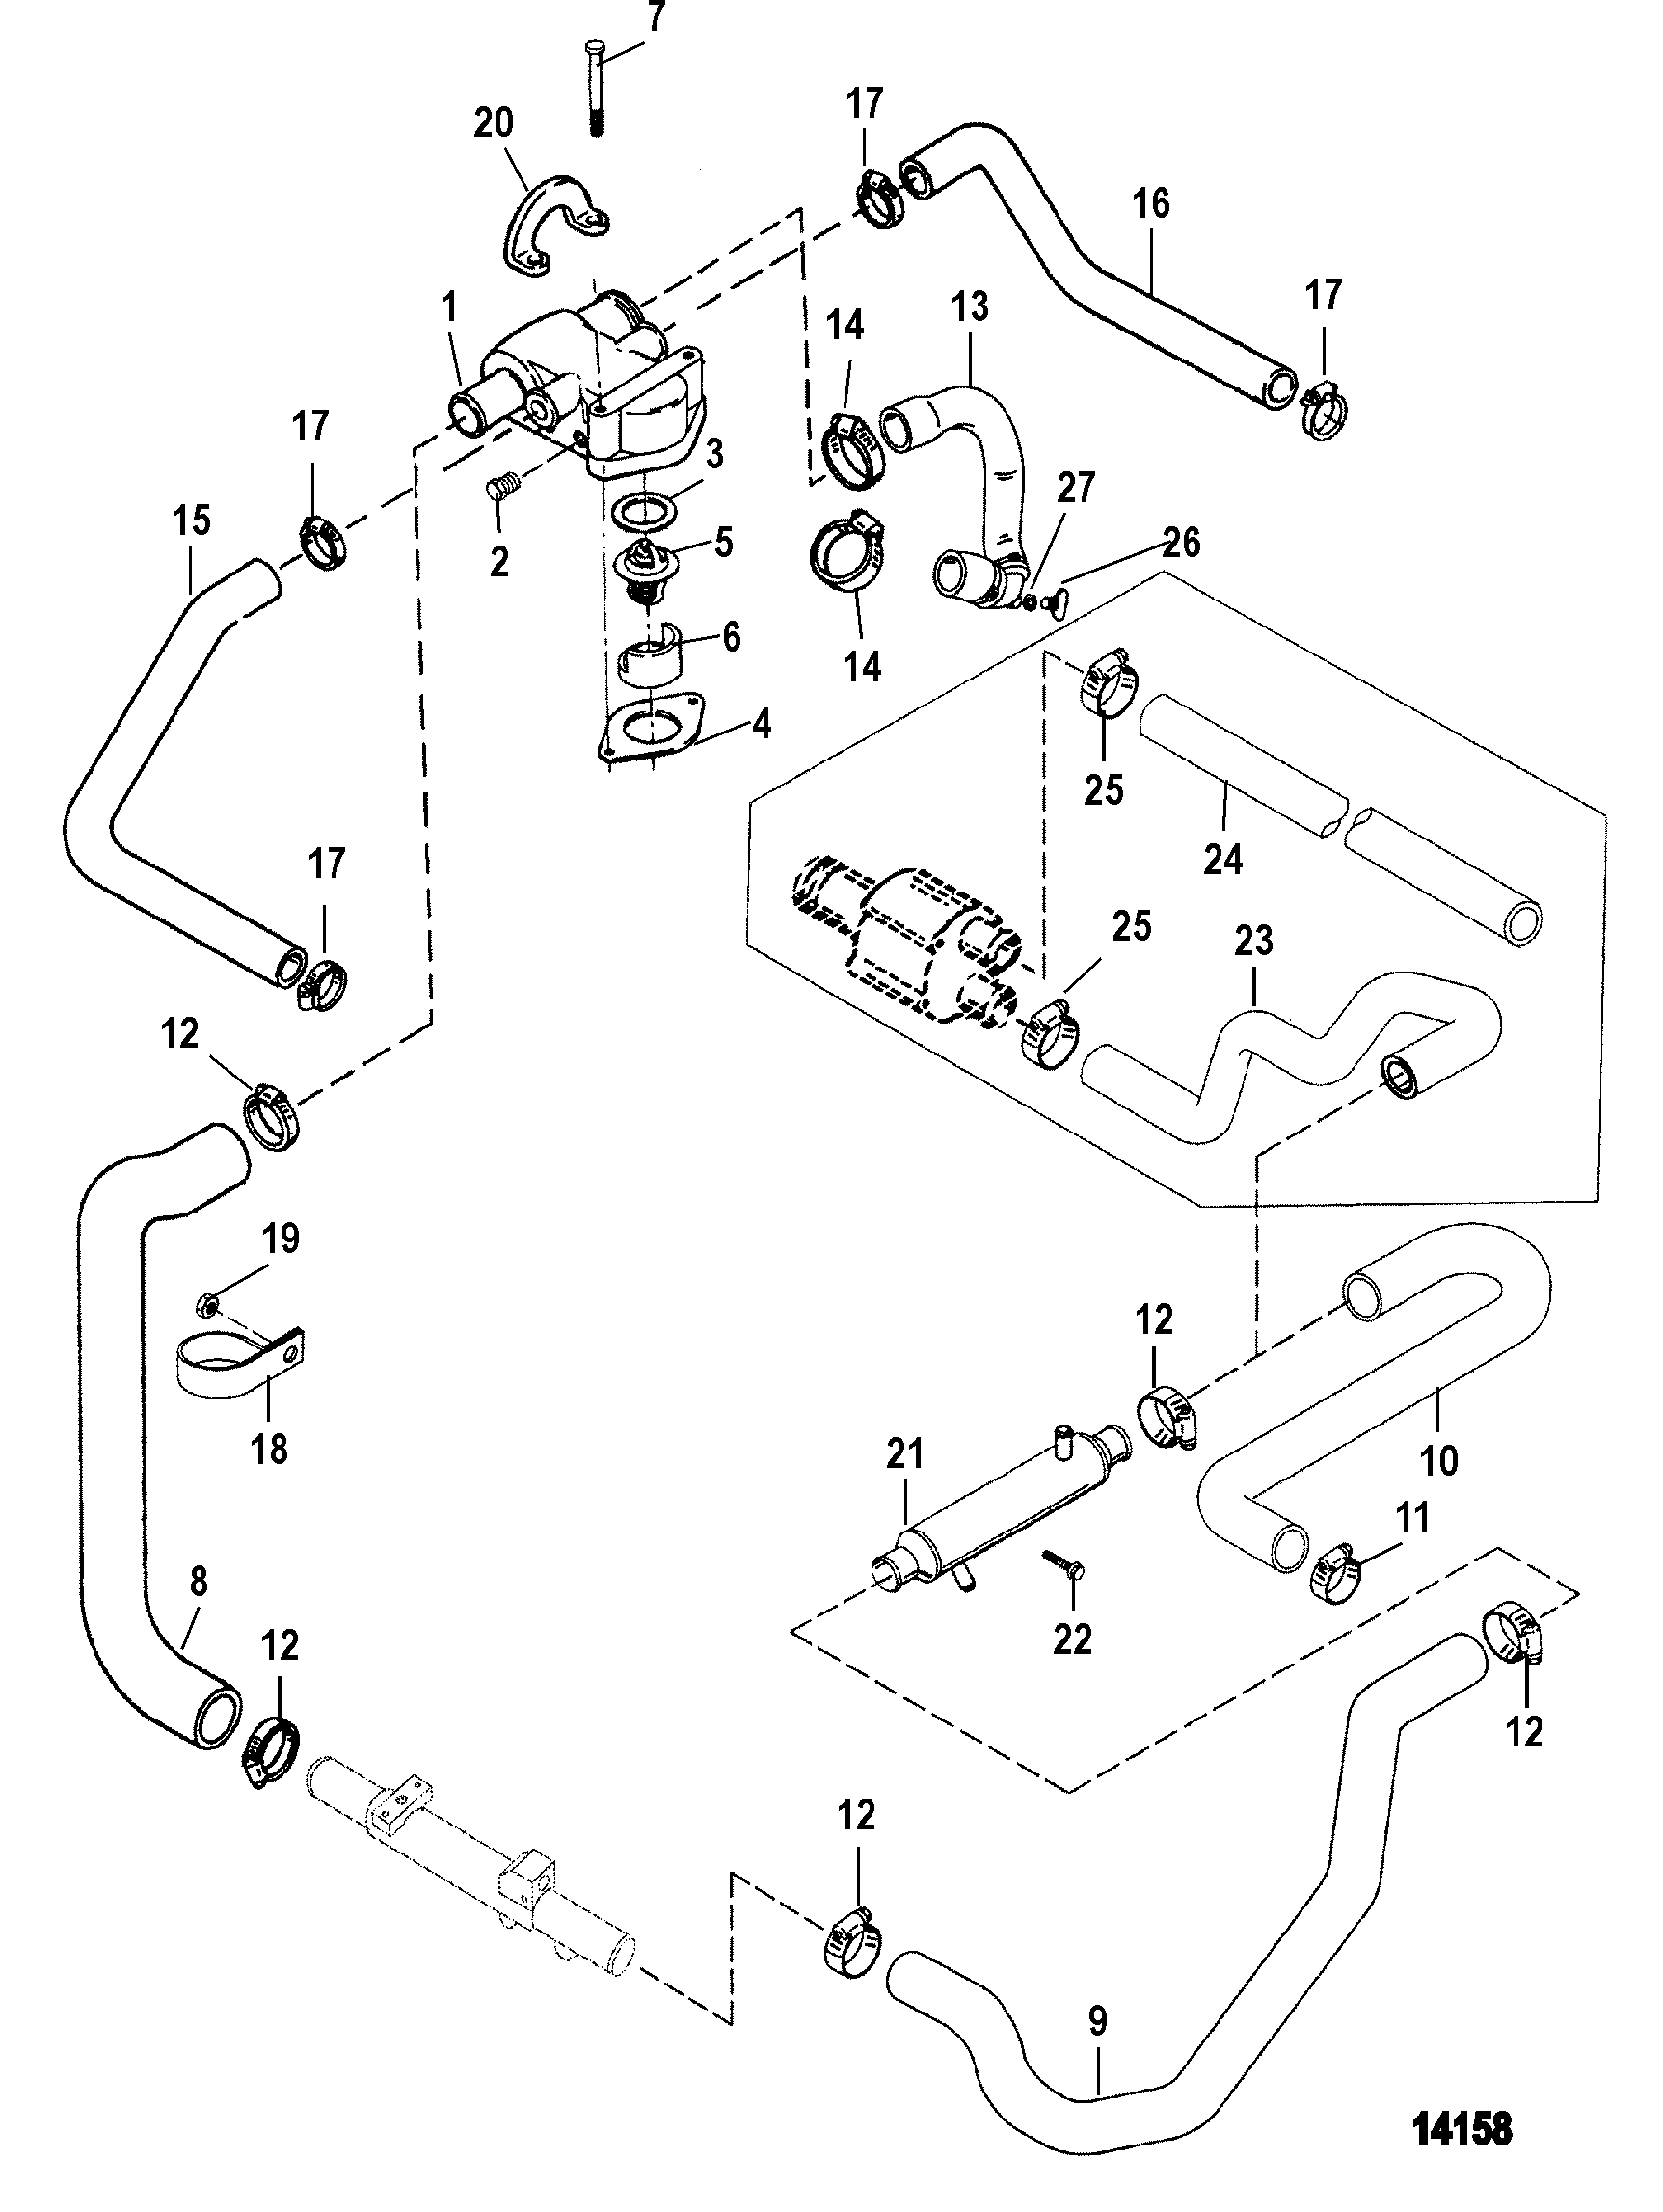 Mercruiser 5 0 Cooling System Diagram Free Wiring For You 2zz Ge Pinout Wire Harness Standard 0l Efi Alpha 50 Engine Raw Water